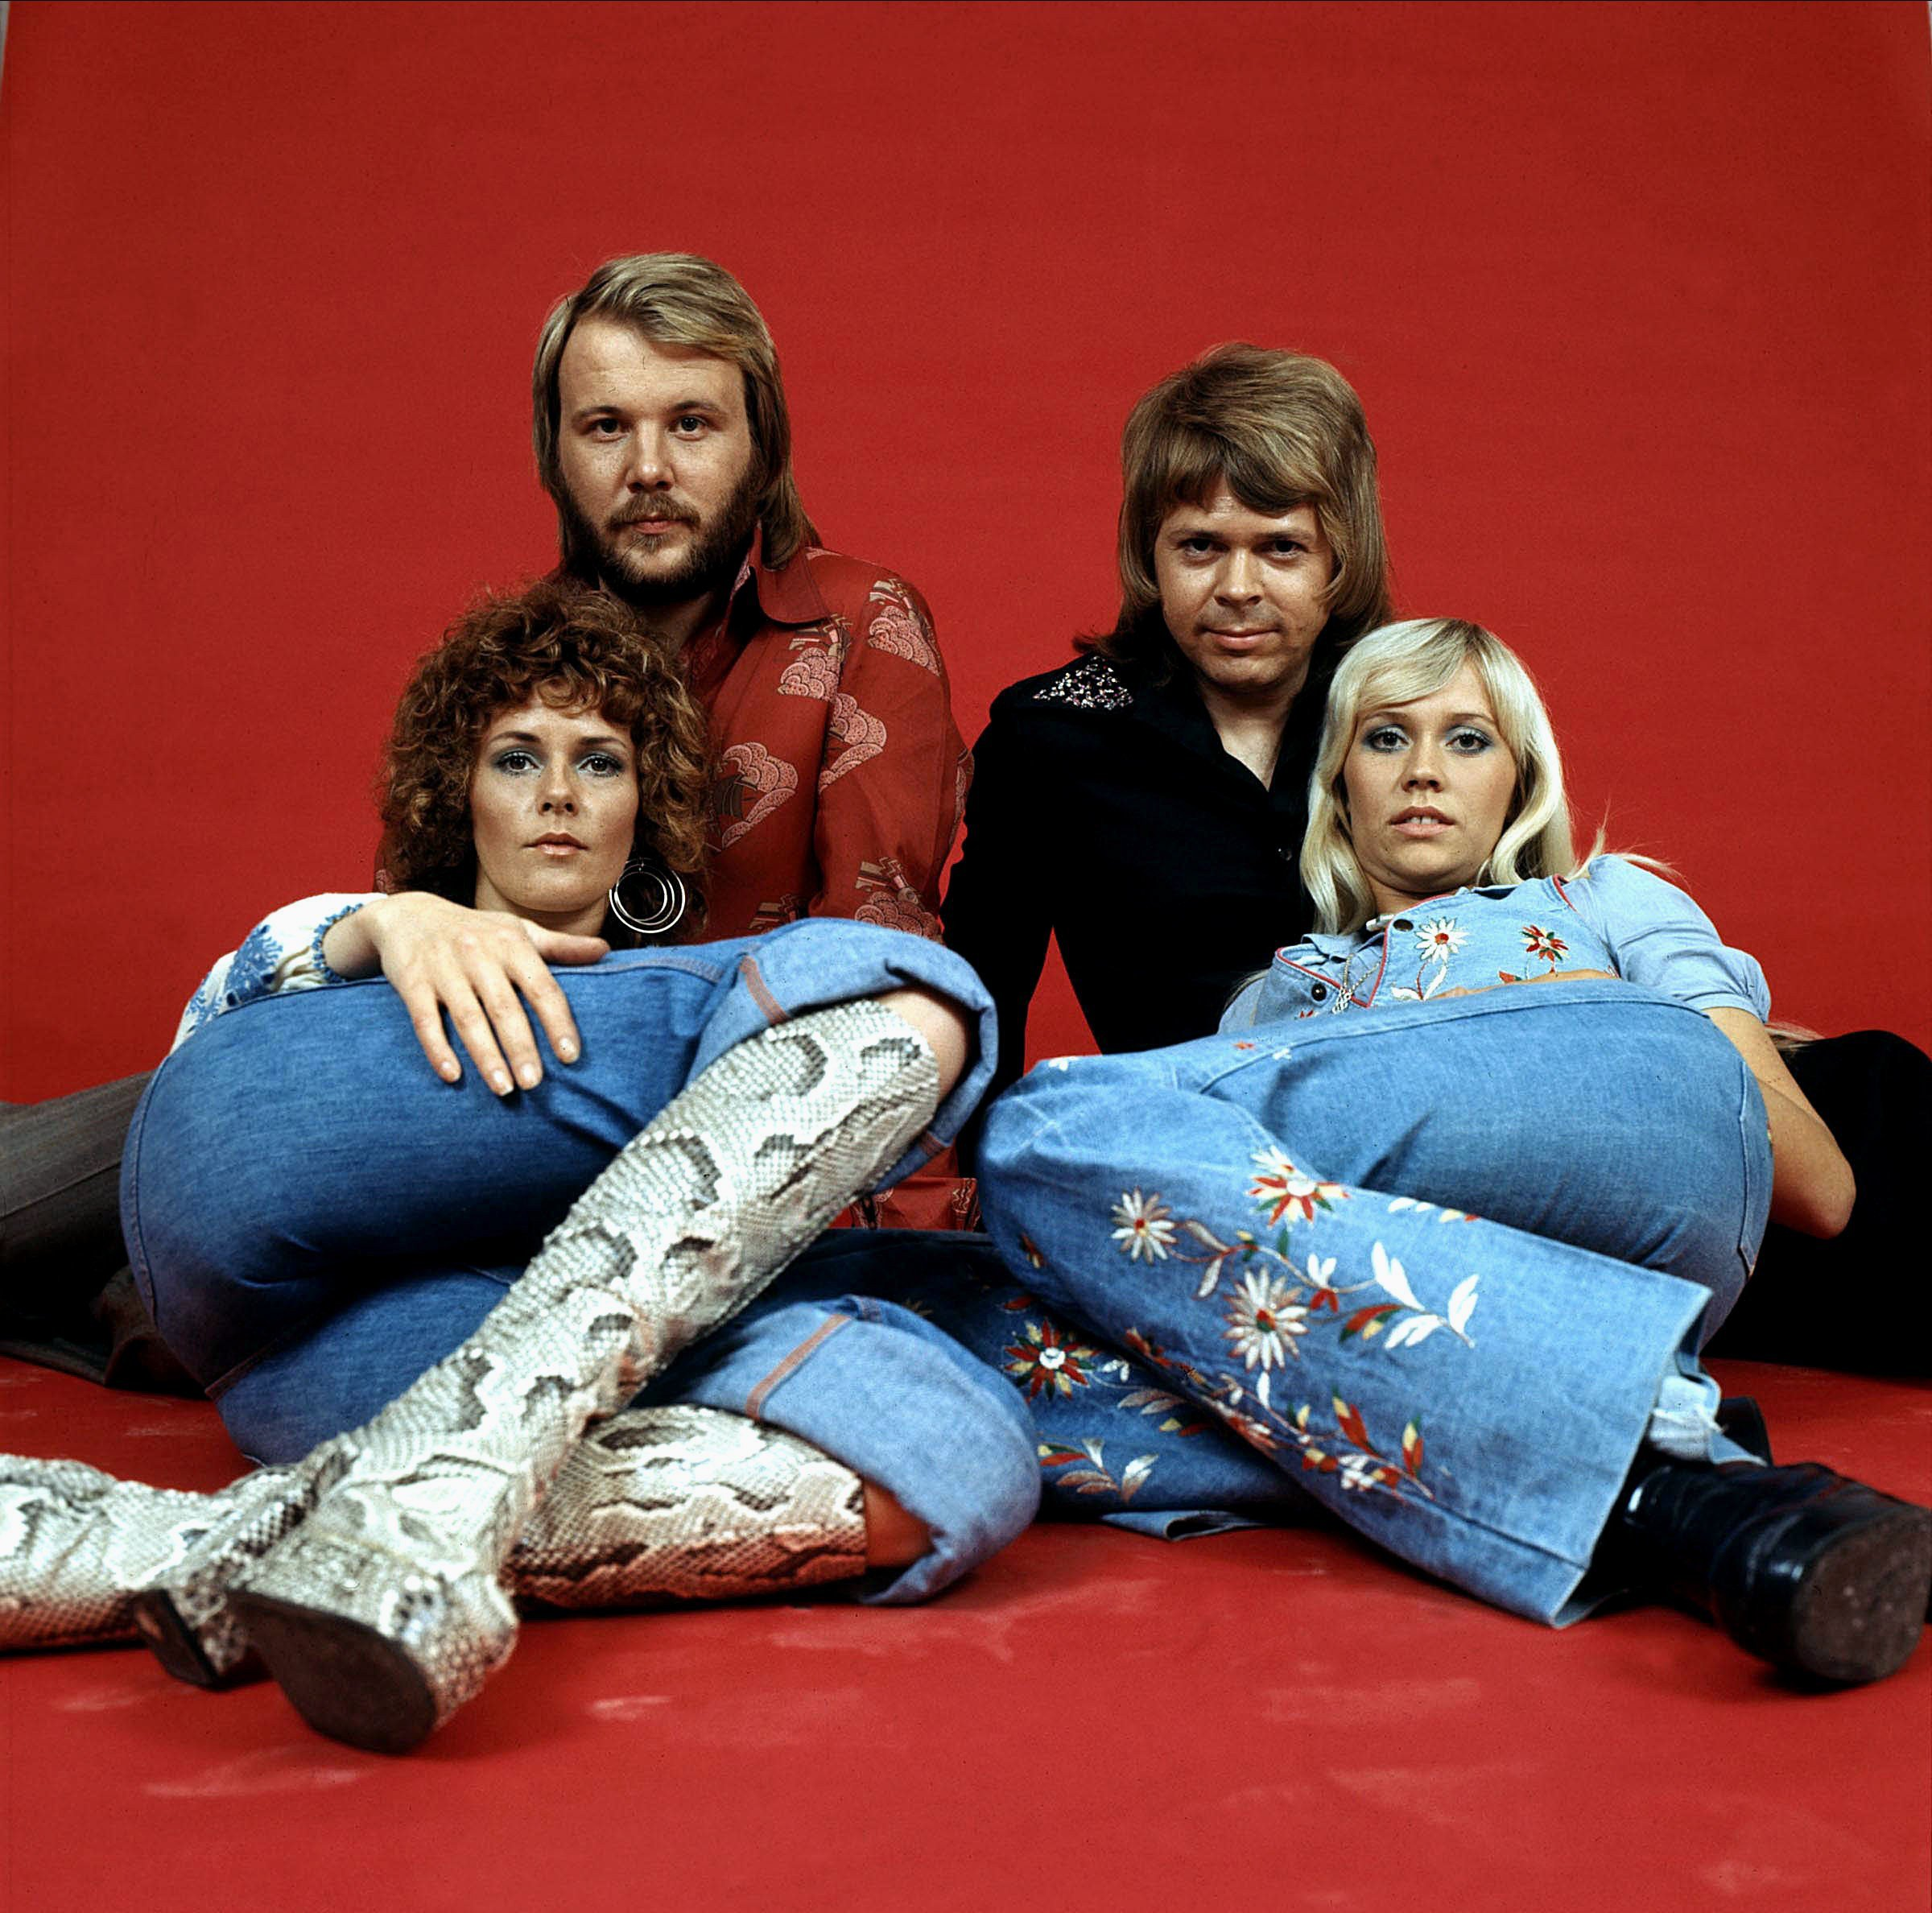 How old are Abba members and when did they last tour?